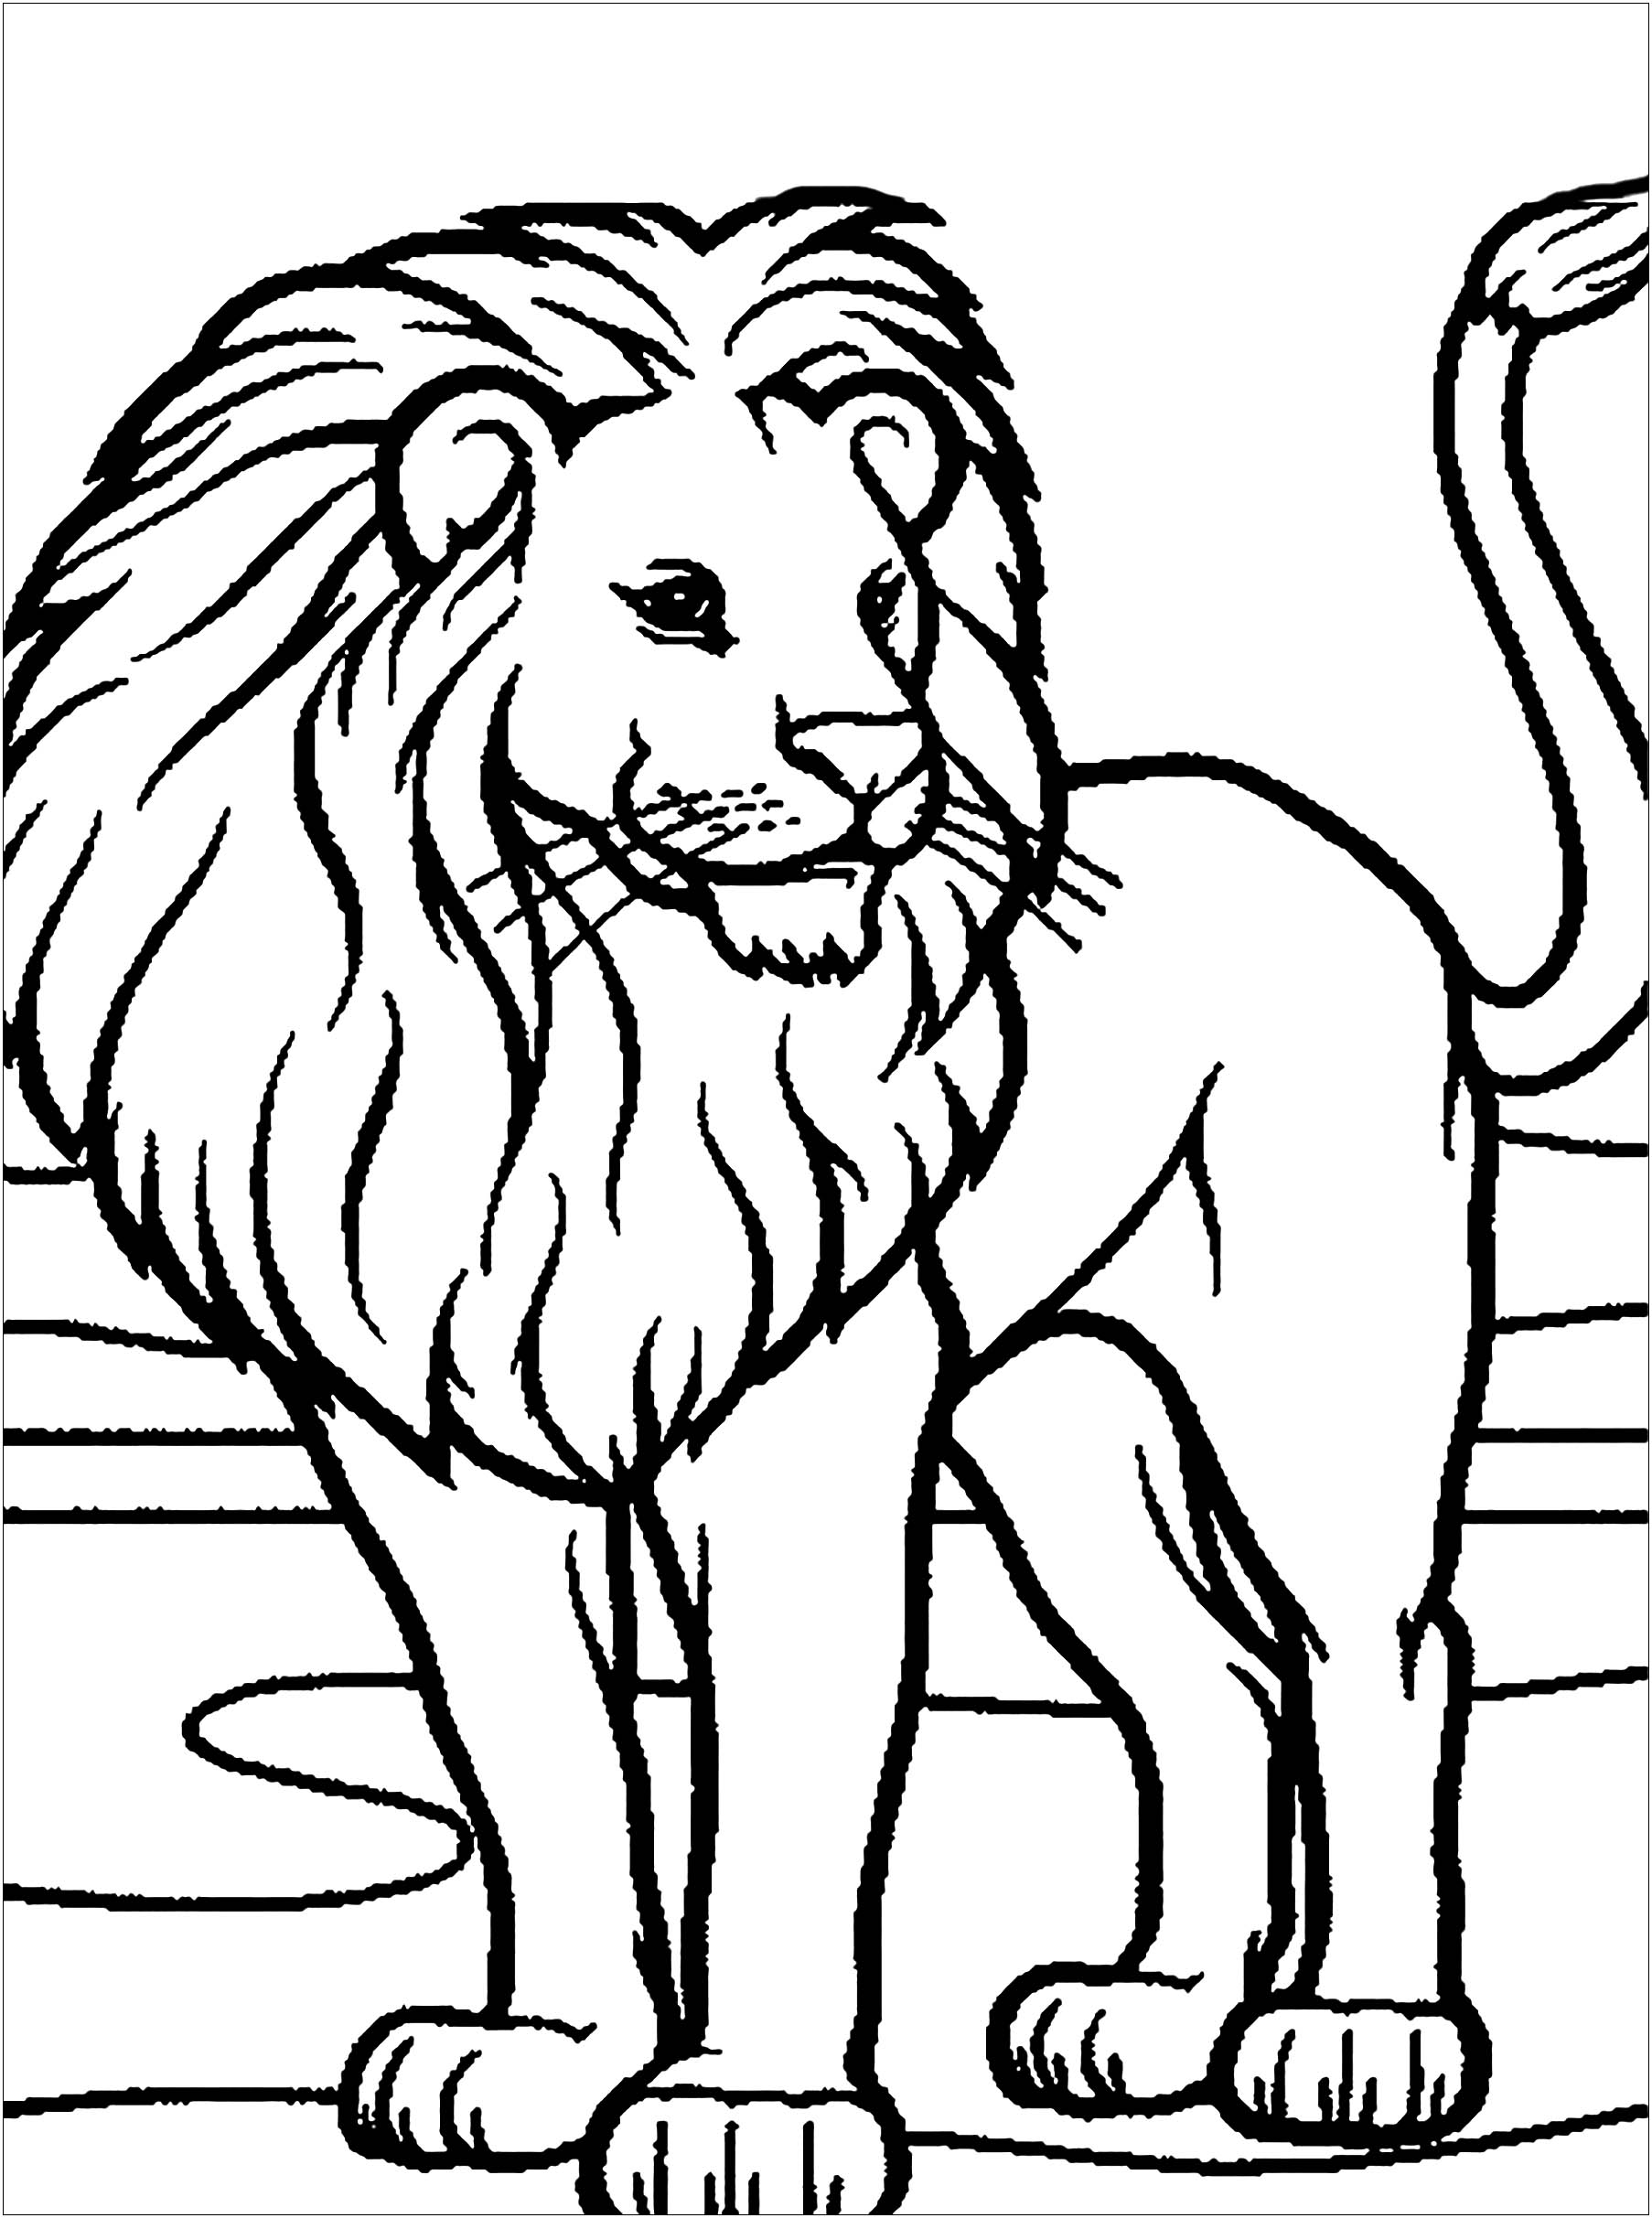 lion free to color for children kids coloring skull sheet thanksgiving drawings easy coloring pages Lion Coloring Page